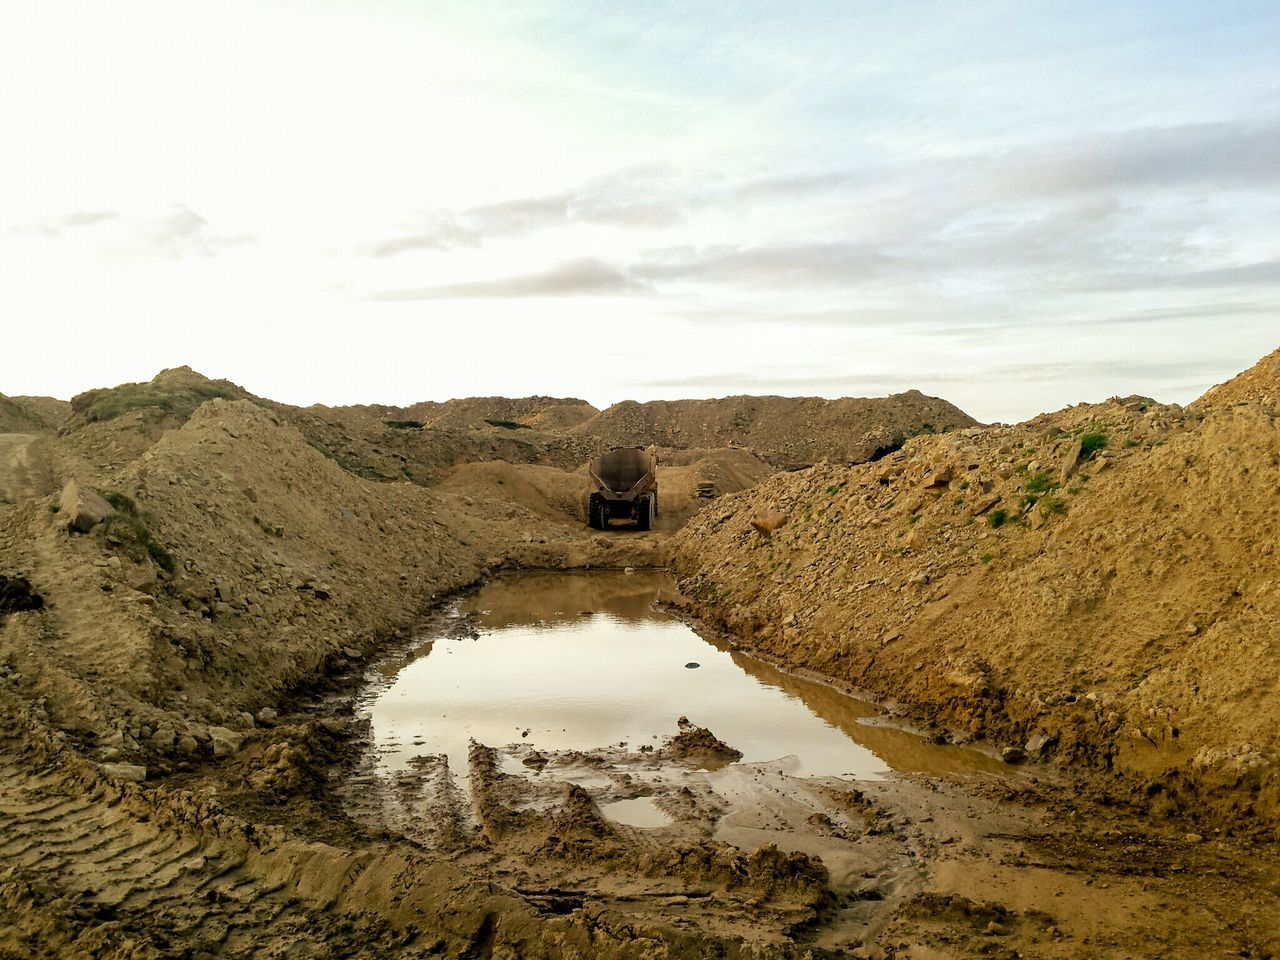 Reflection Outdoors Sky Cloud - Sky Day Water No People Landscape Nature Beauty In Nature Sand Dune Digging Digger Machine Parts Business Finance And Industry Construction Site The Great Outdoors - 2017 EyeEm Awards Quarry Earth Work Stone Rock BYOPaper! Landscapes Scenics